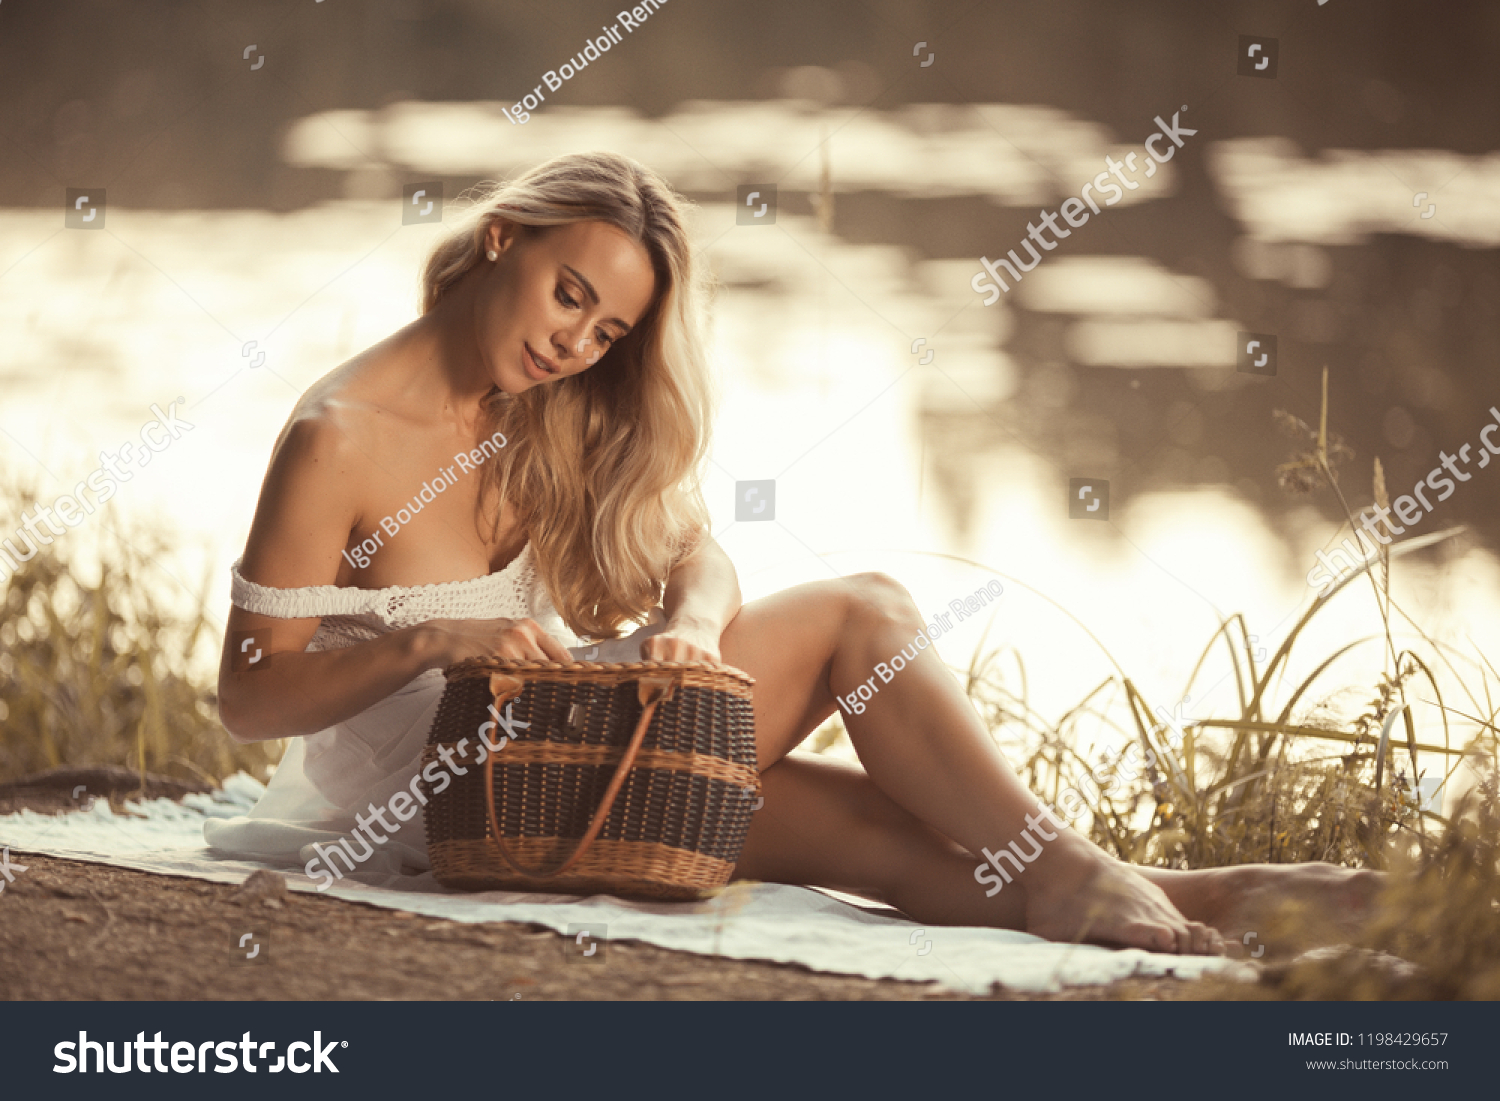 Sensual Young Woman With Beautiful Breasts And Shiny Long Blond Hair Sitting By The Lake At